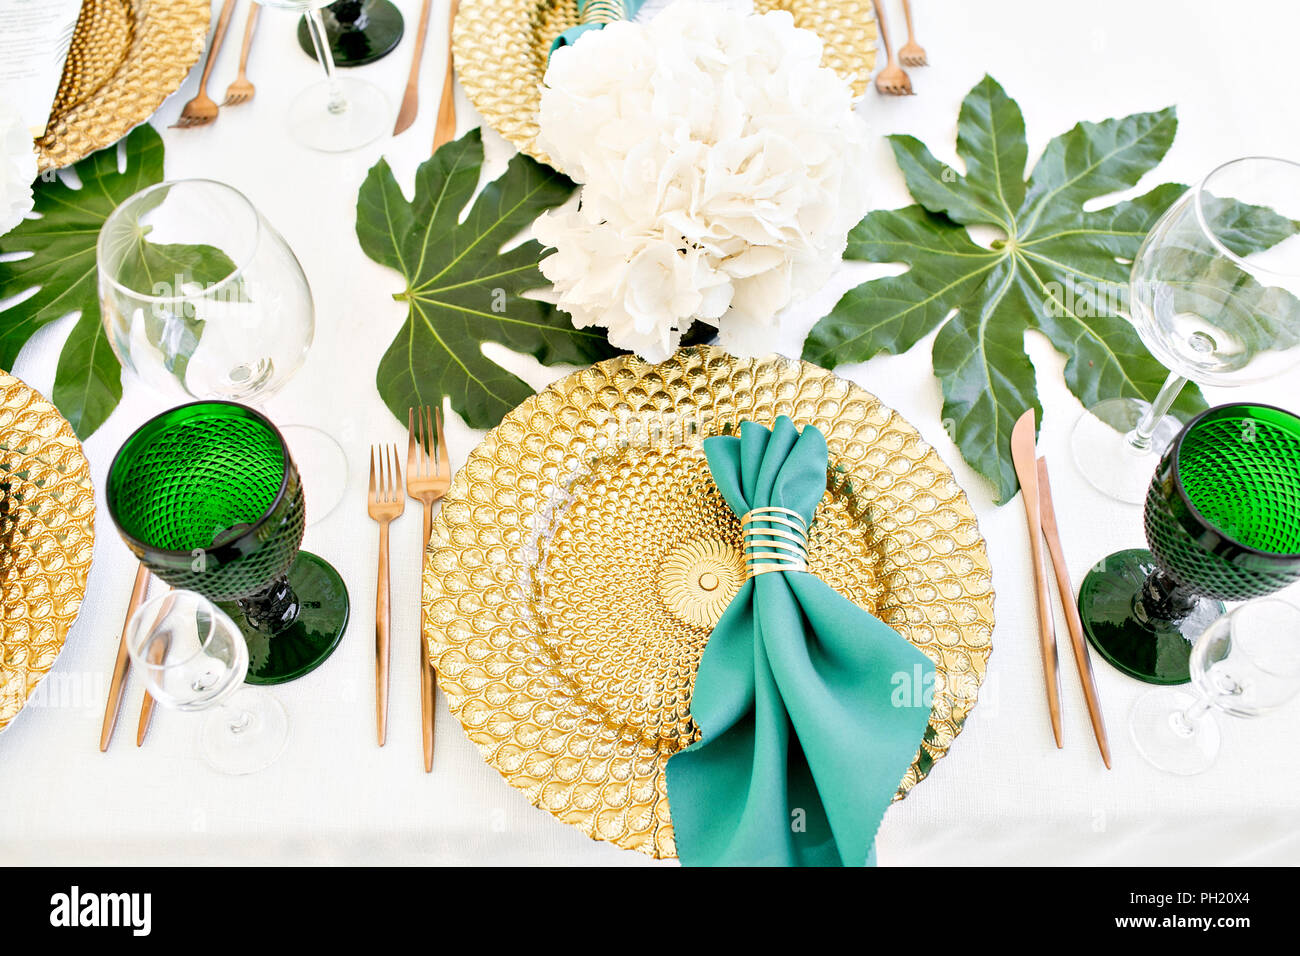 Beautiful banquet hall under a tent for a wedding reception. Interior of a wedding tent decoration ready for guests. Decor flowers. Green theme - Stock Image